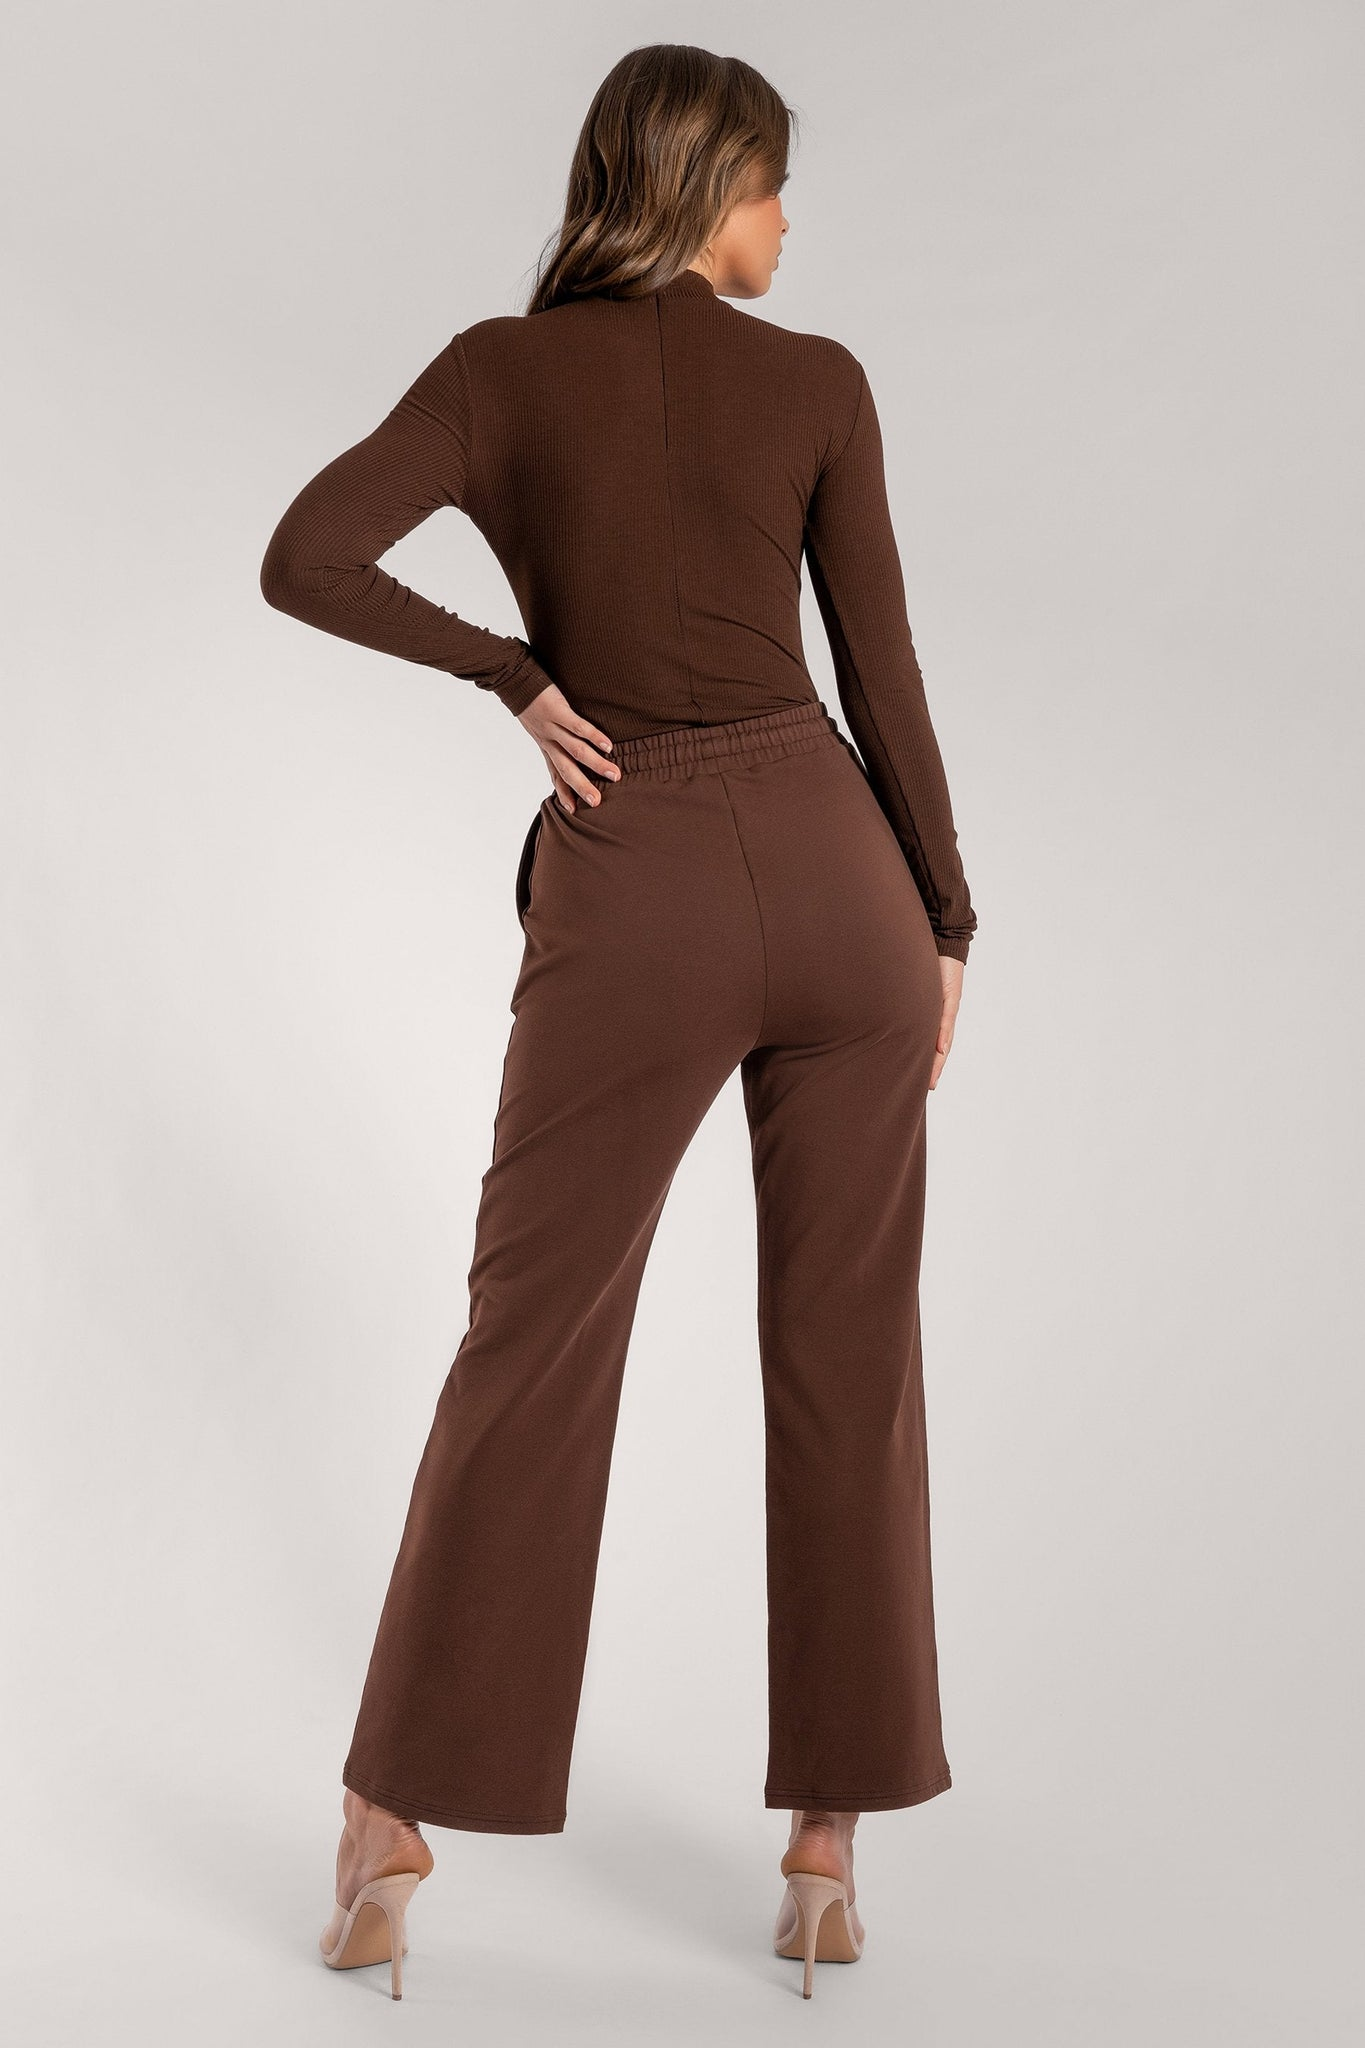 Lexie Long Sleeve Bodysuit - Chocolate - MESHKI